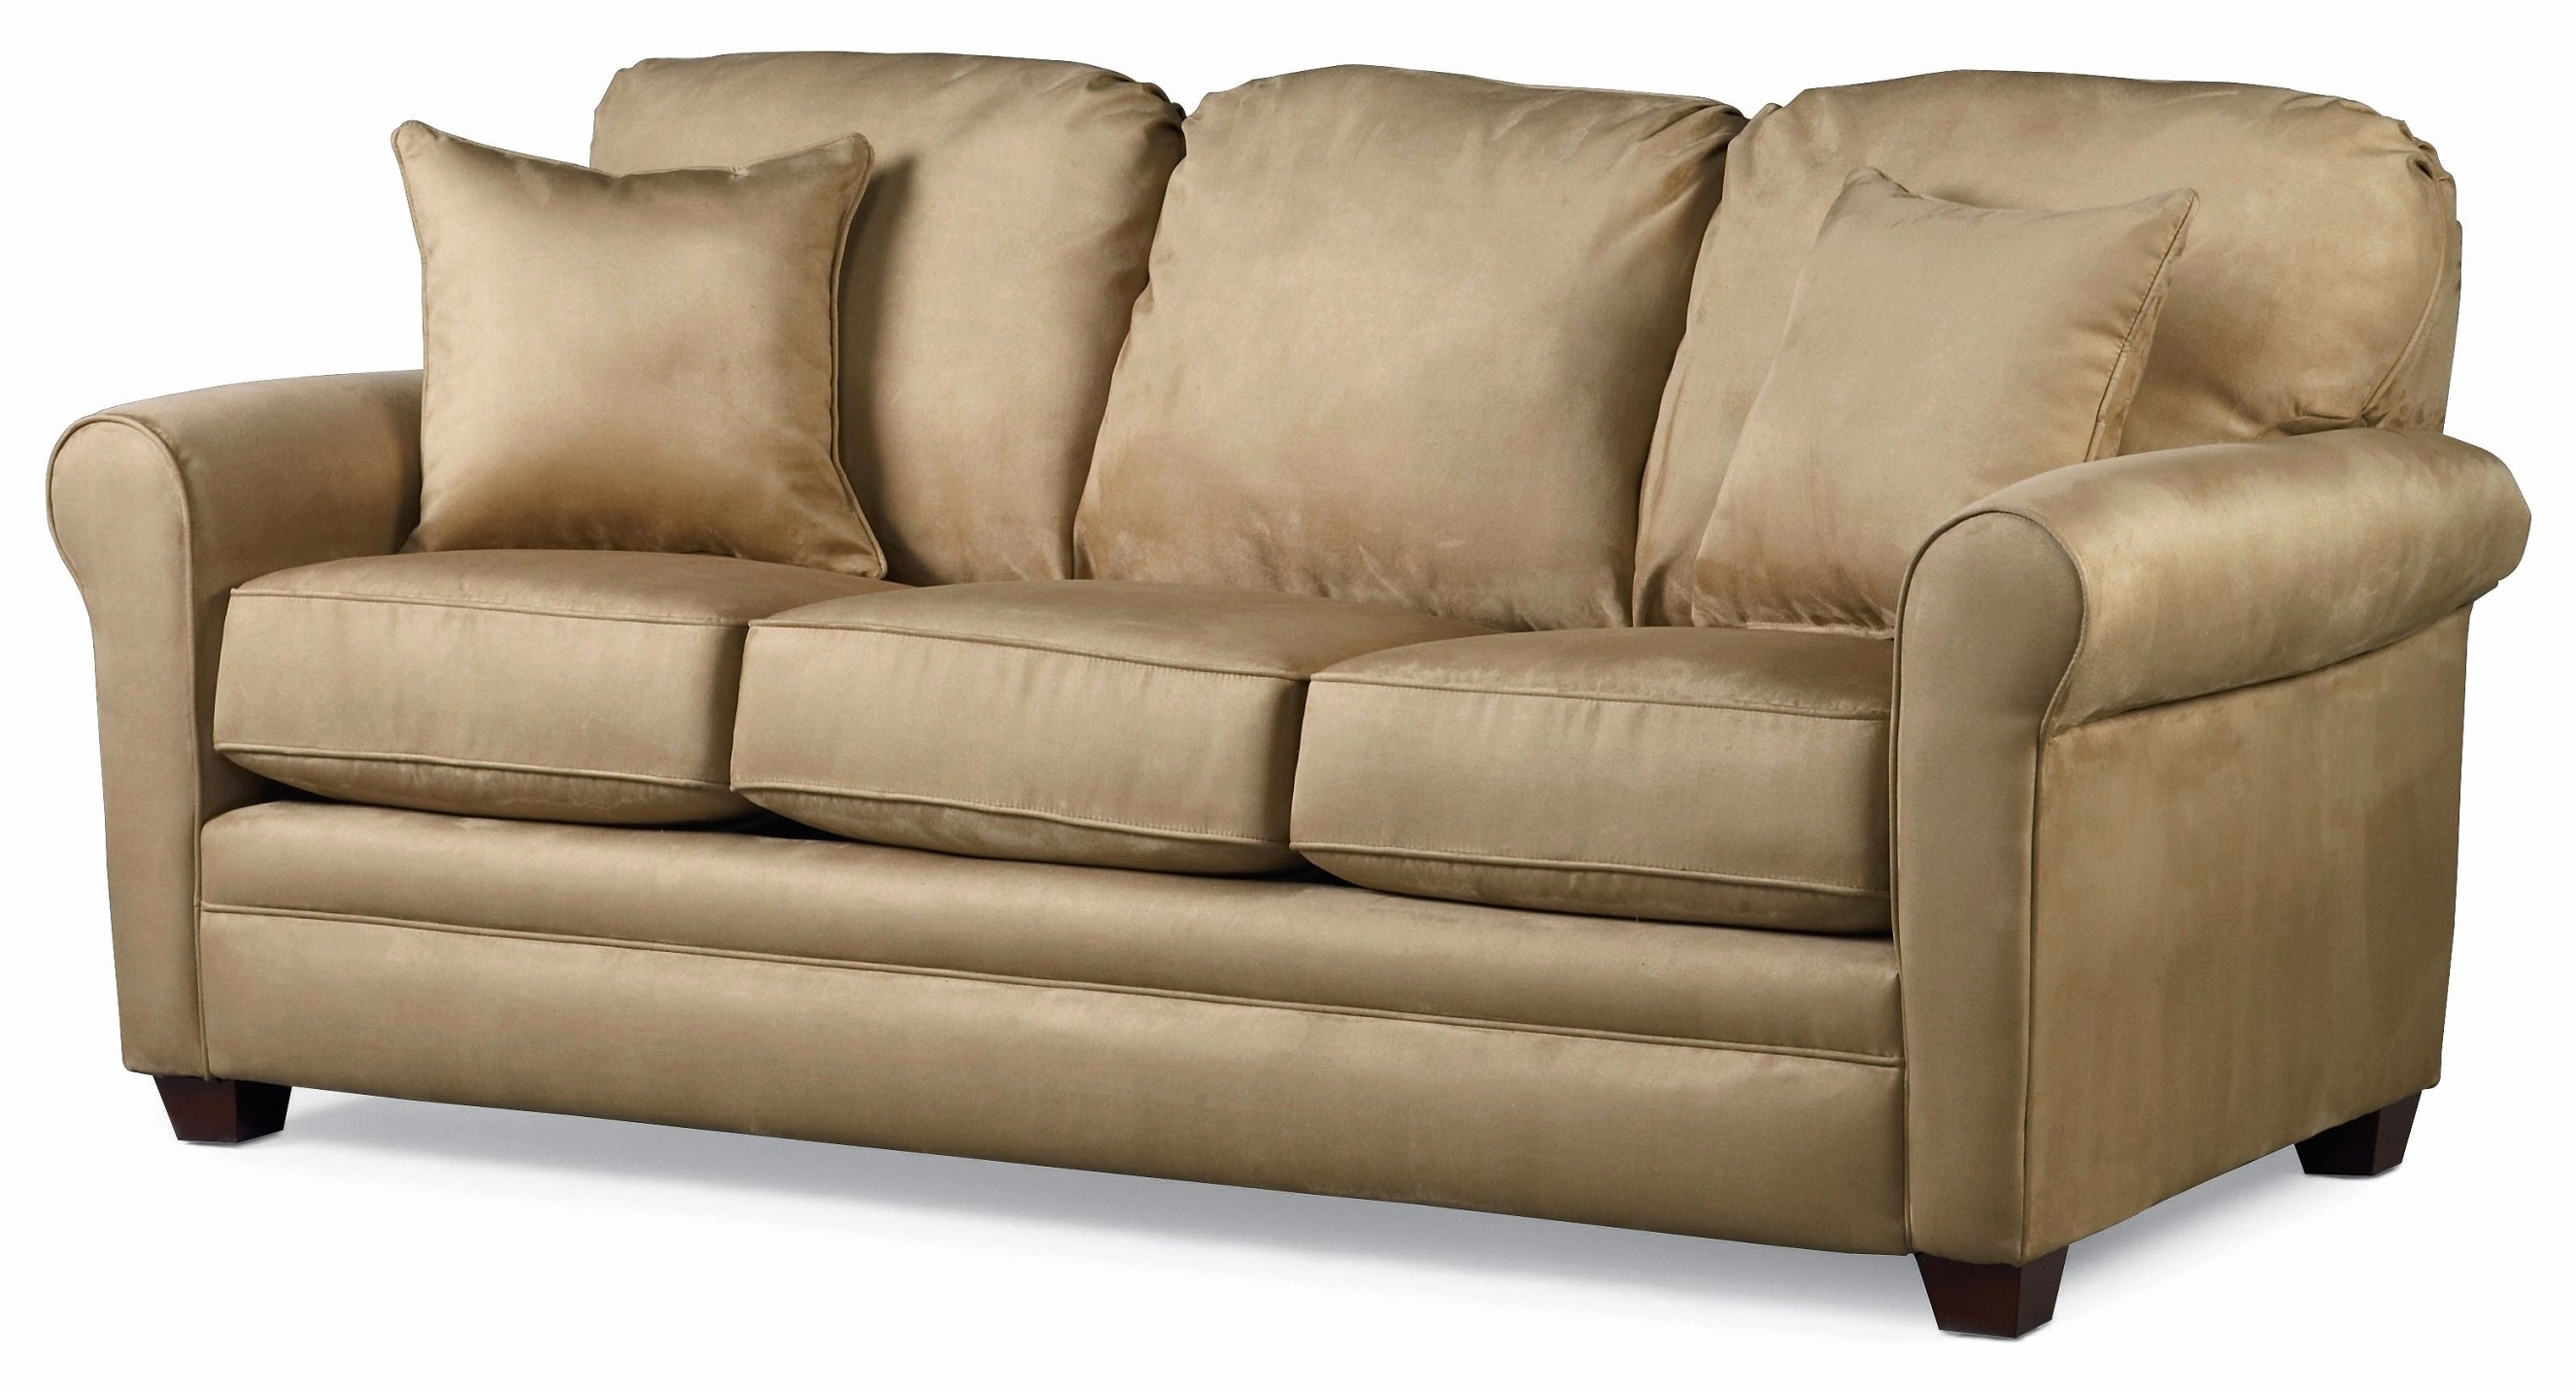 Widely Used Sofa : Full Size Leather Sleeper Sofa Luxury Sofas Fabulous Queen In Queen Size Sofas (View 20 of 20)